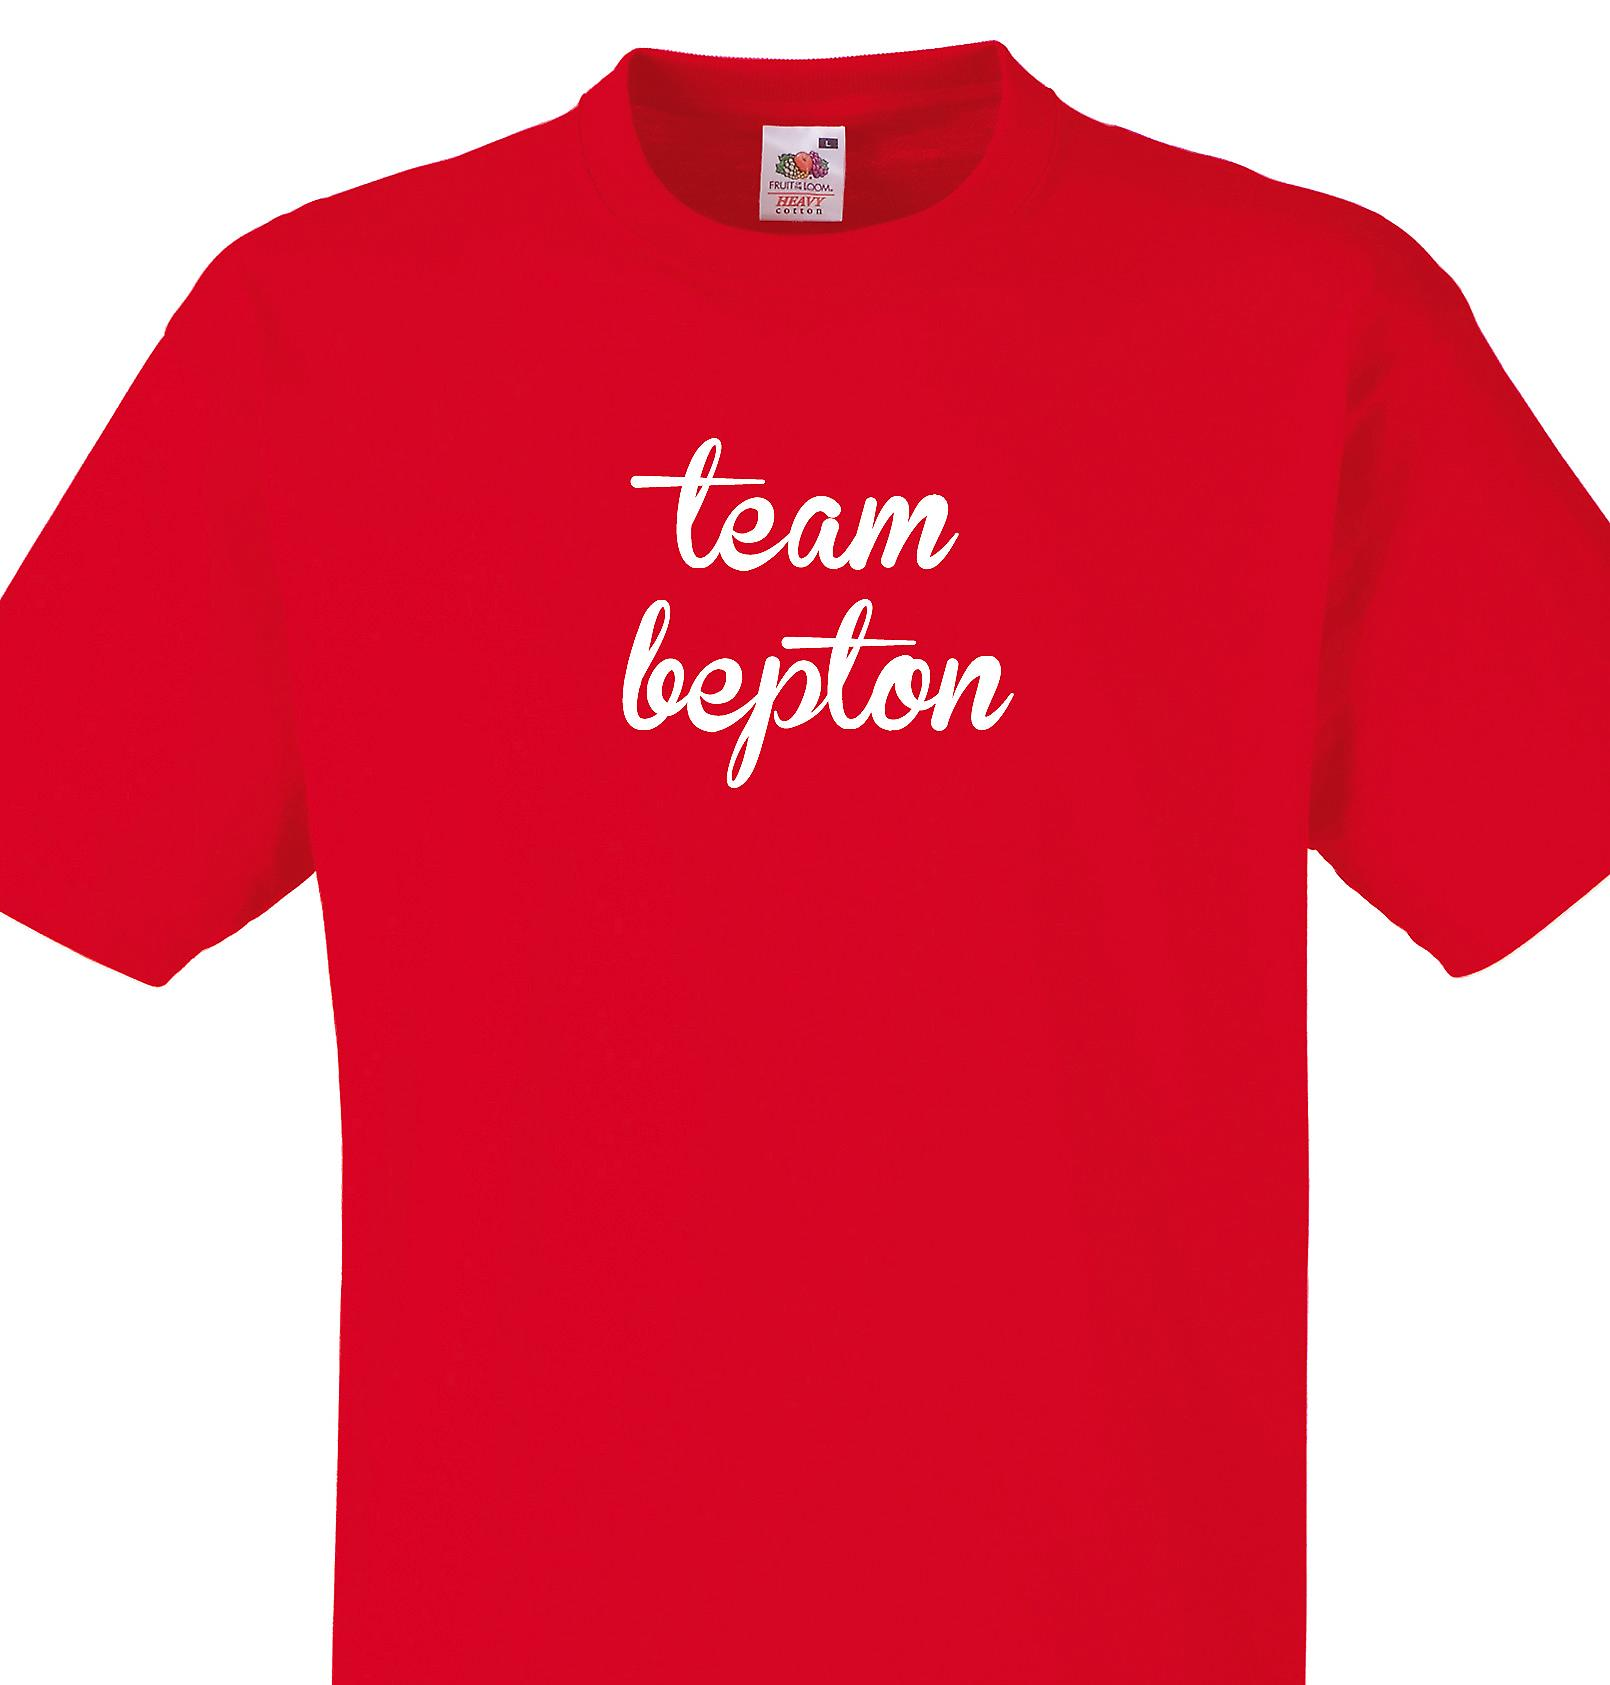 Team Bepton Red T shirt